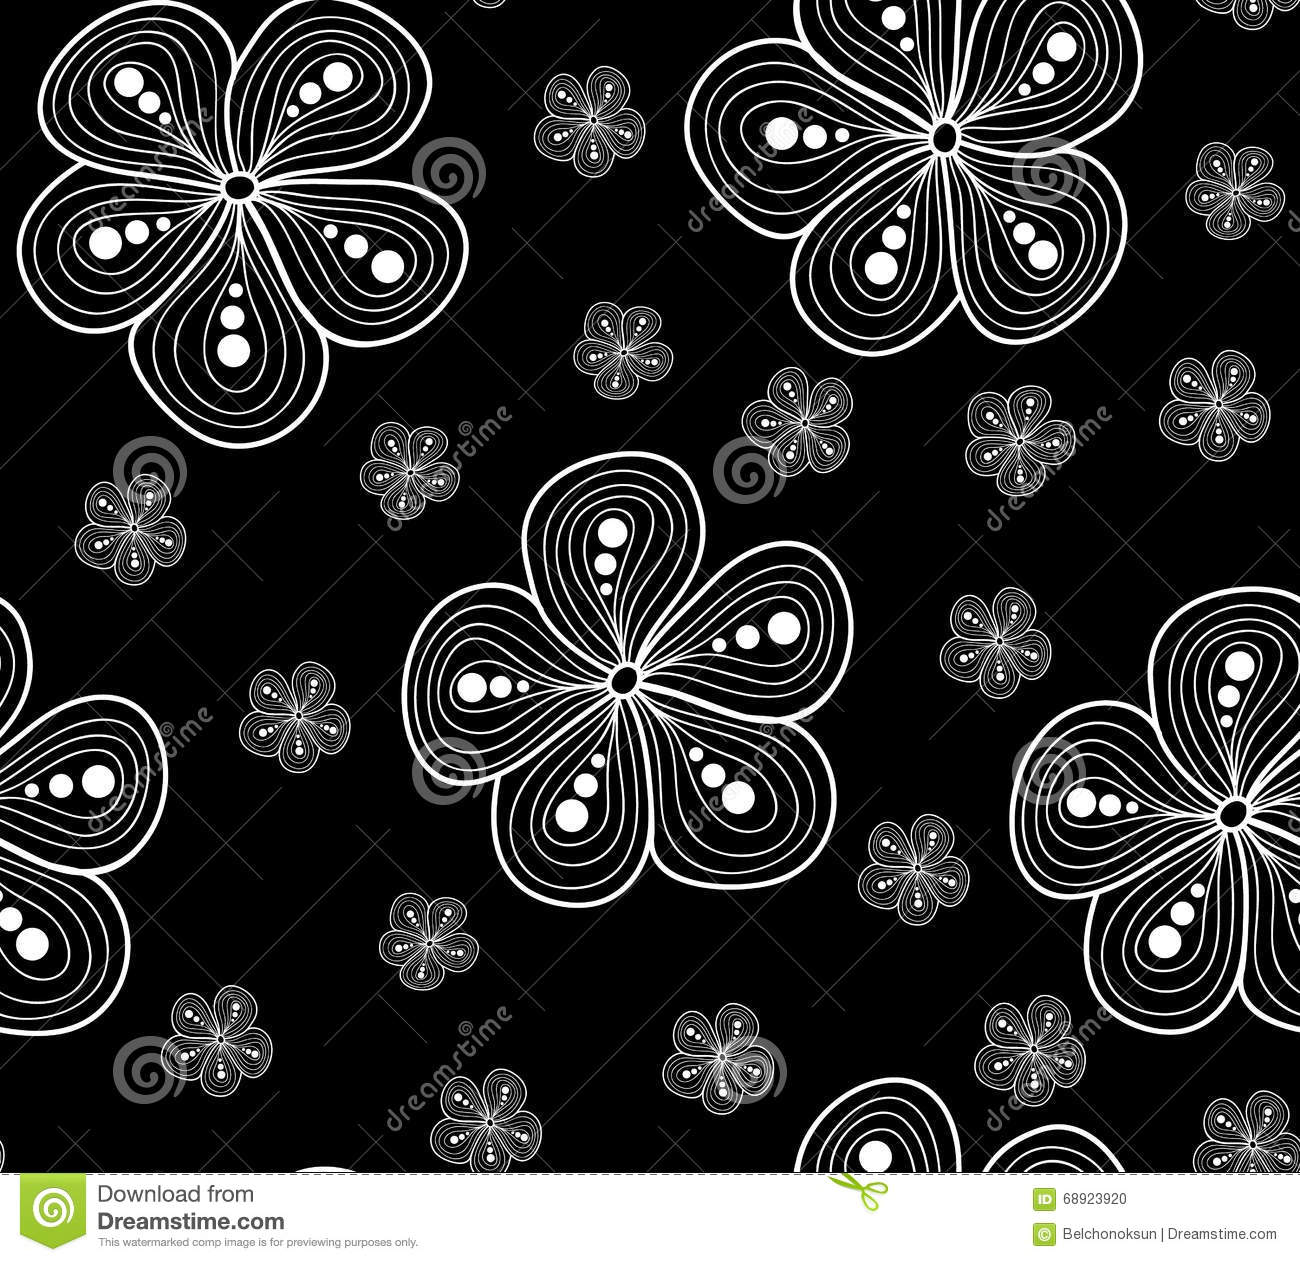 Beautiful vector seamless pattern with figured flowers, black and white floral texture